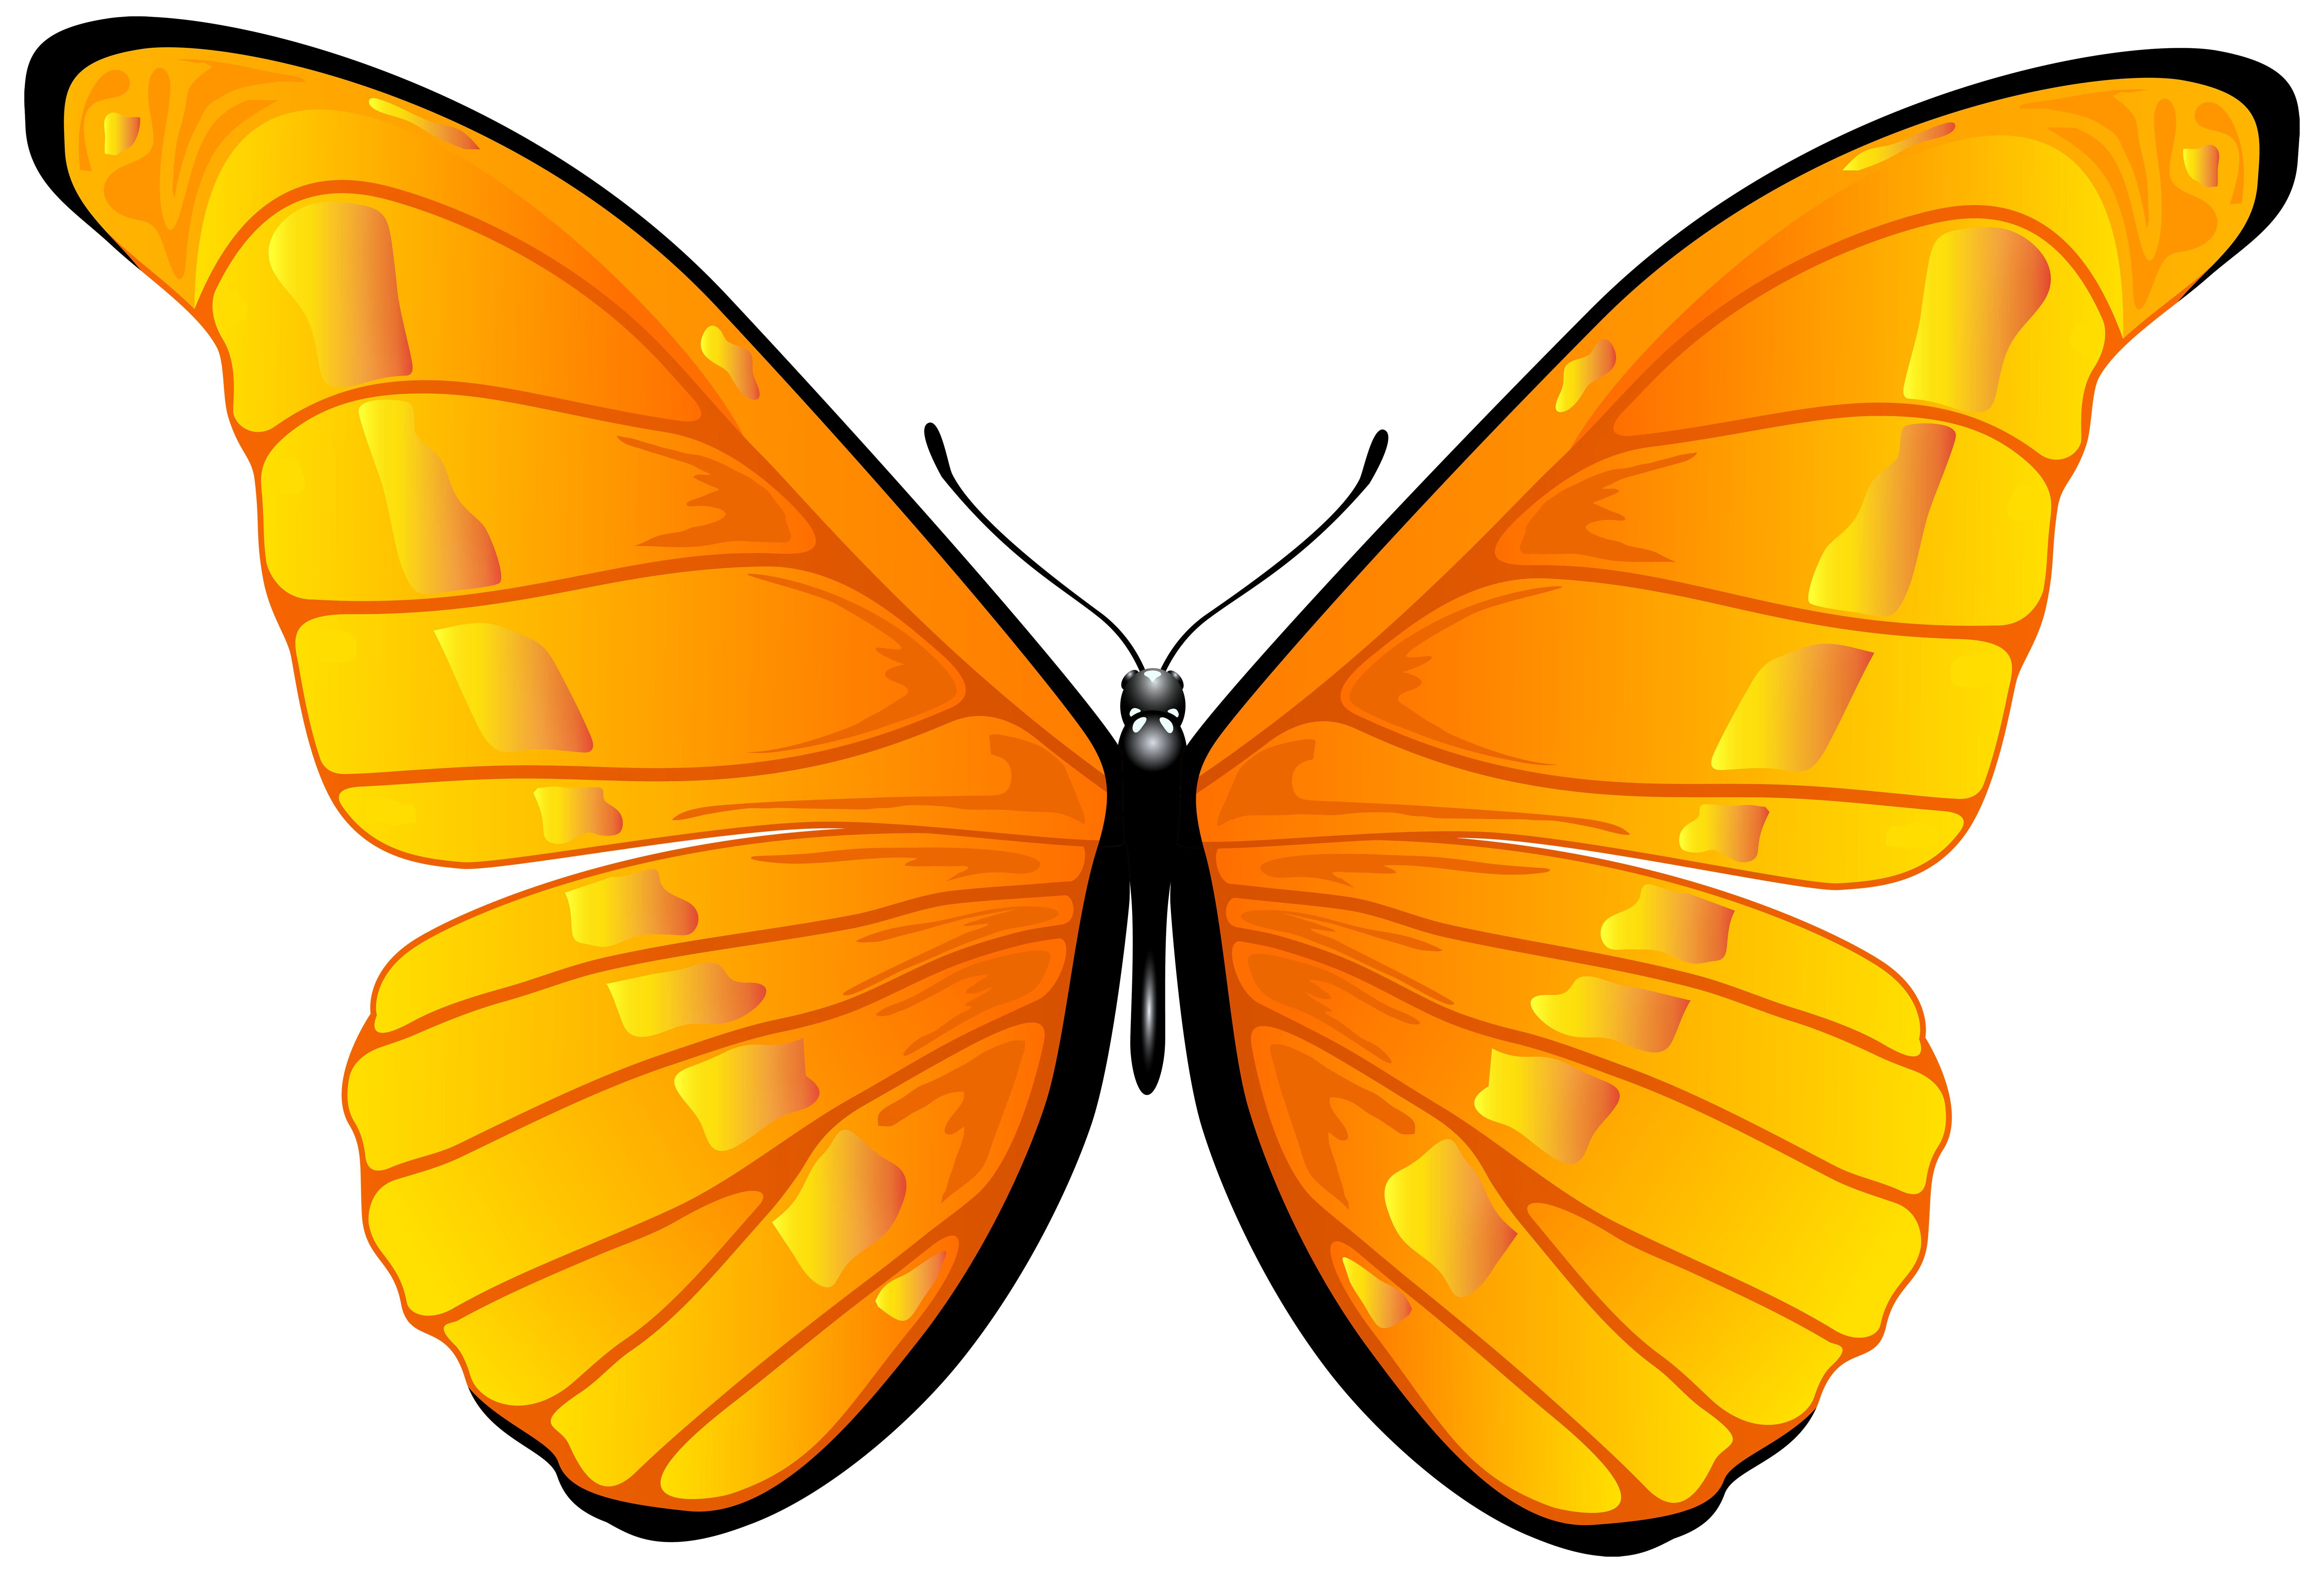 Galaxy clipart butterfly. Orange png clip art